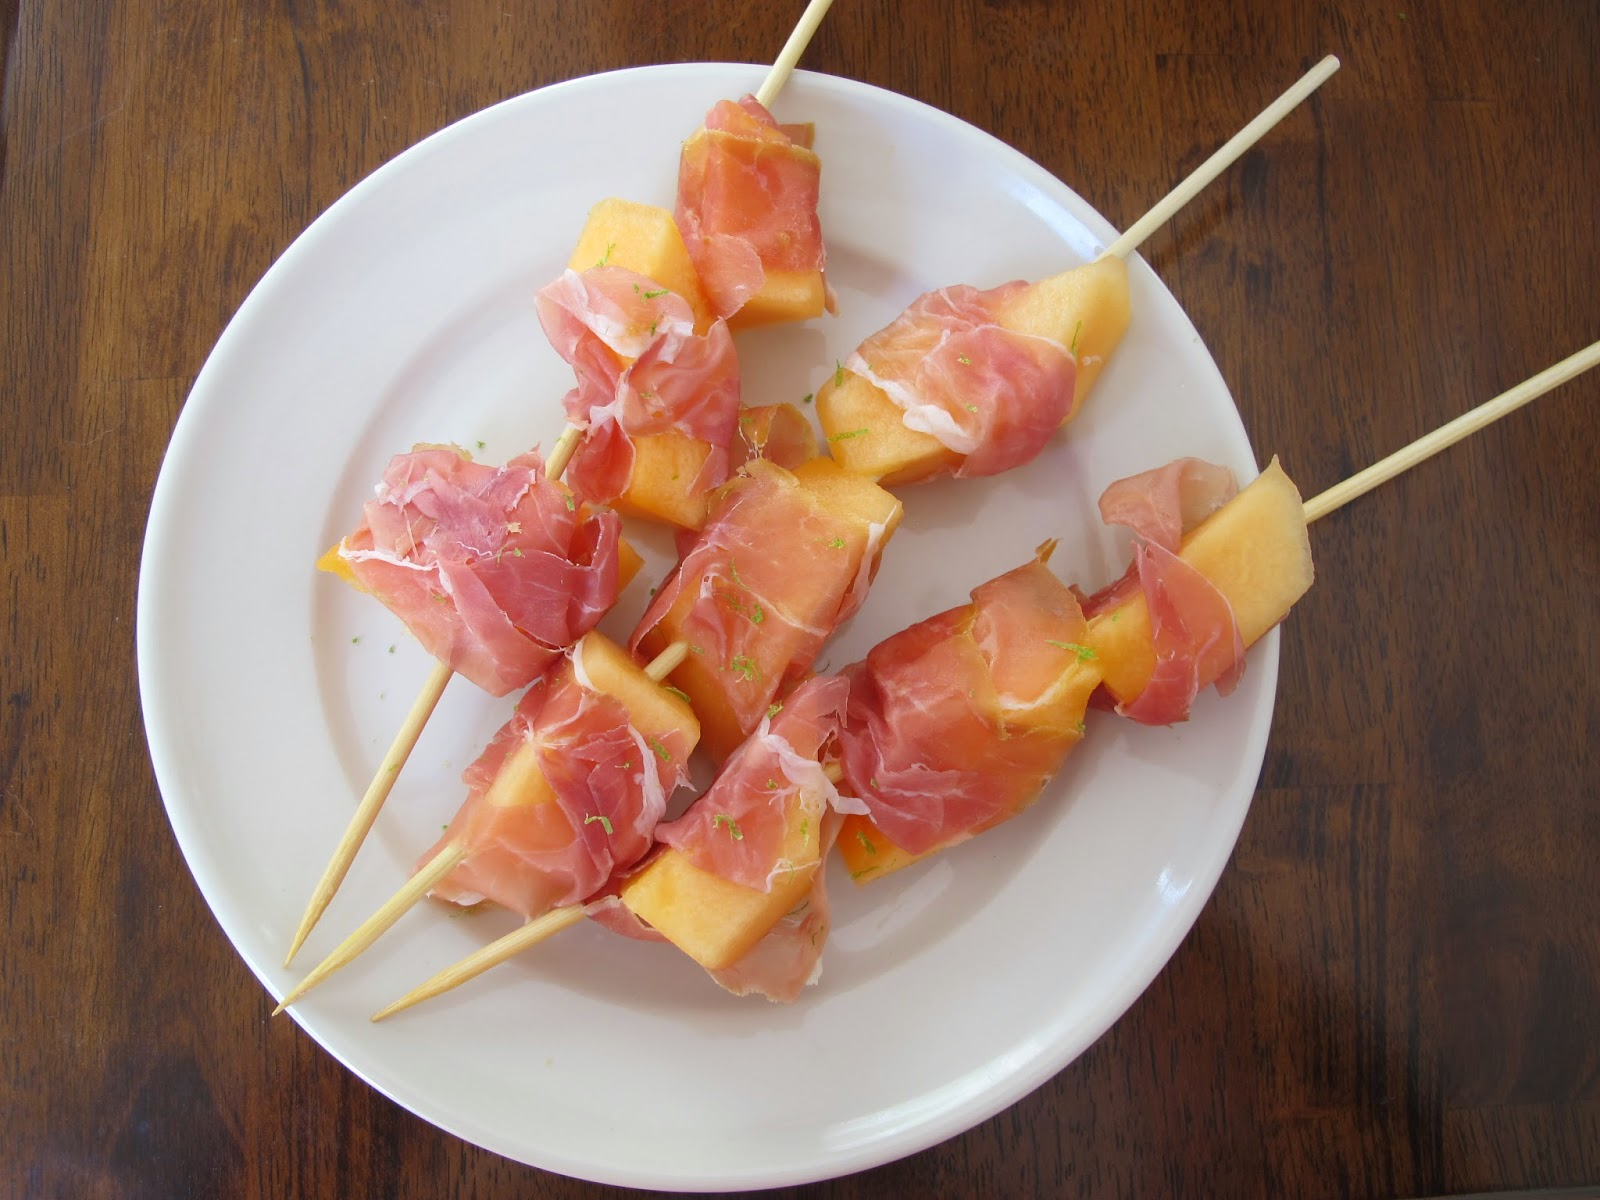 Prosciutto and Melon Kabobs